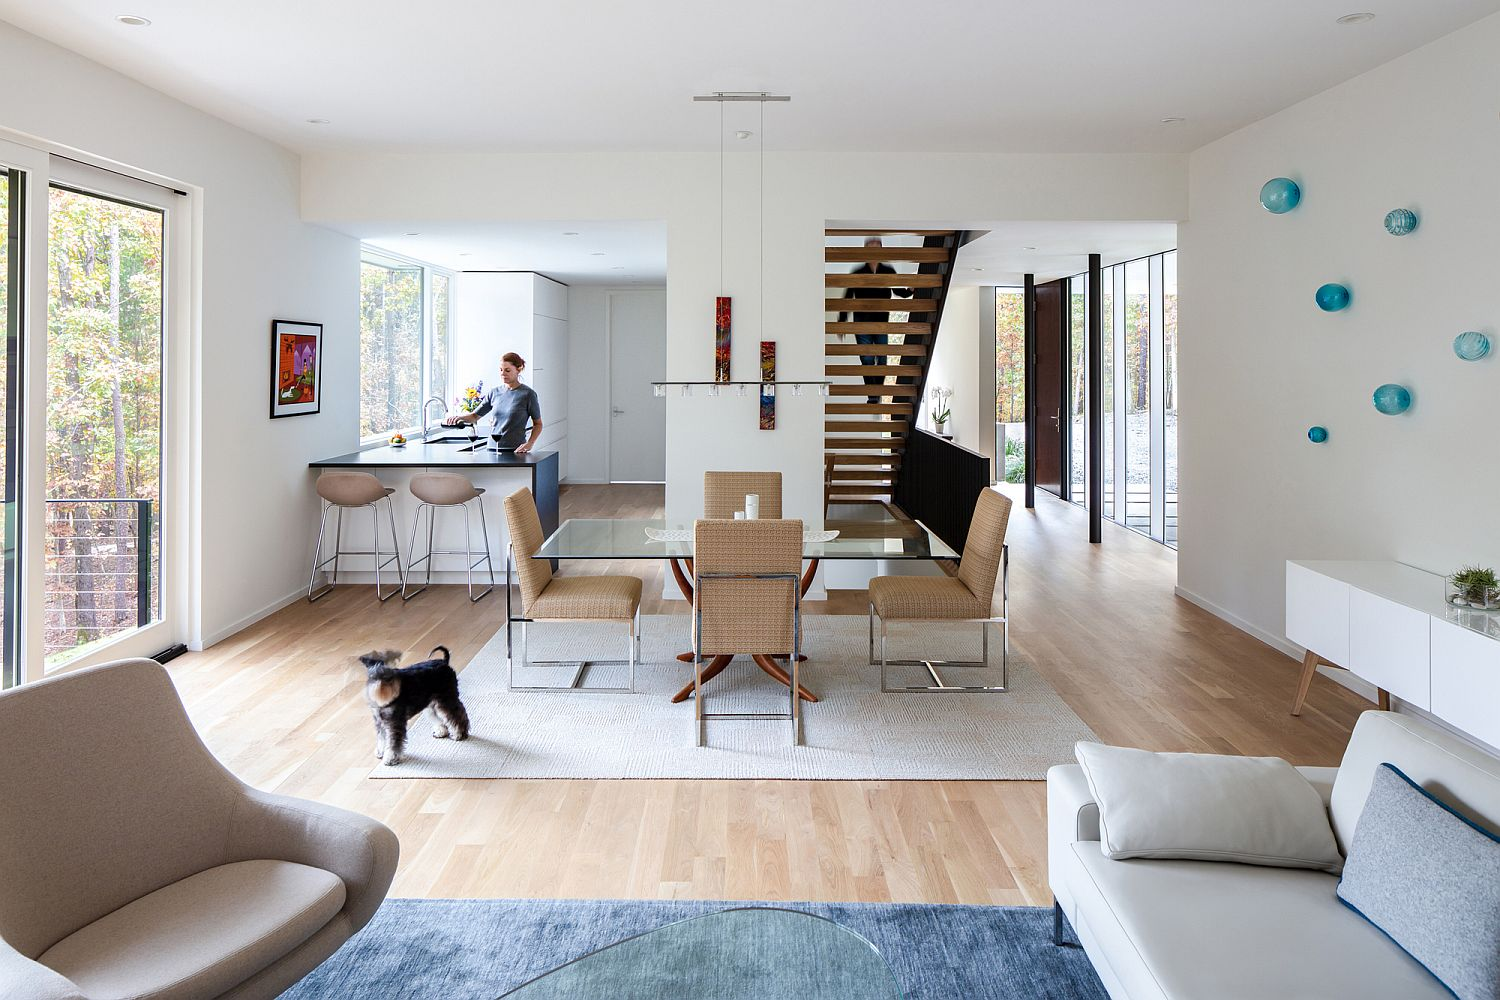 Kitchen, dining area and living space in white and wood with pops of blue